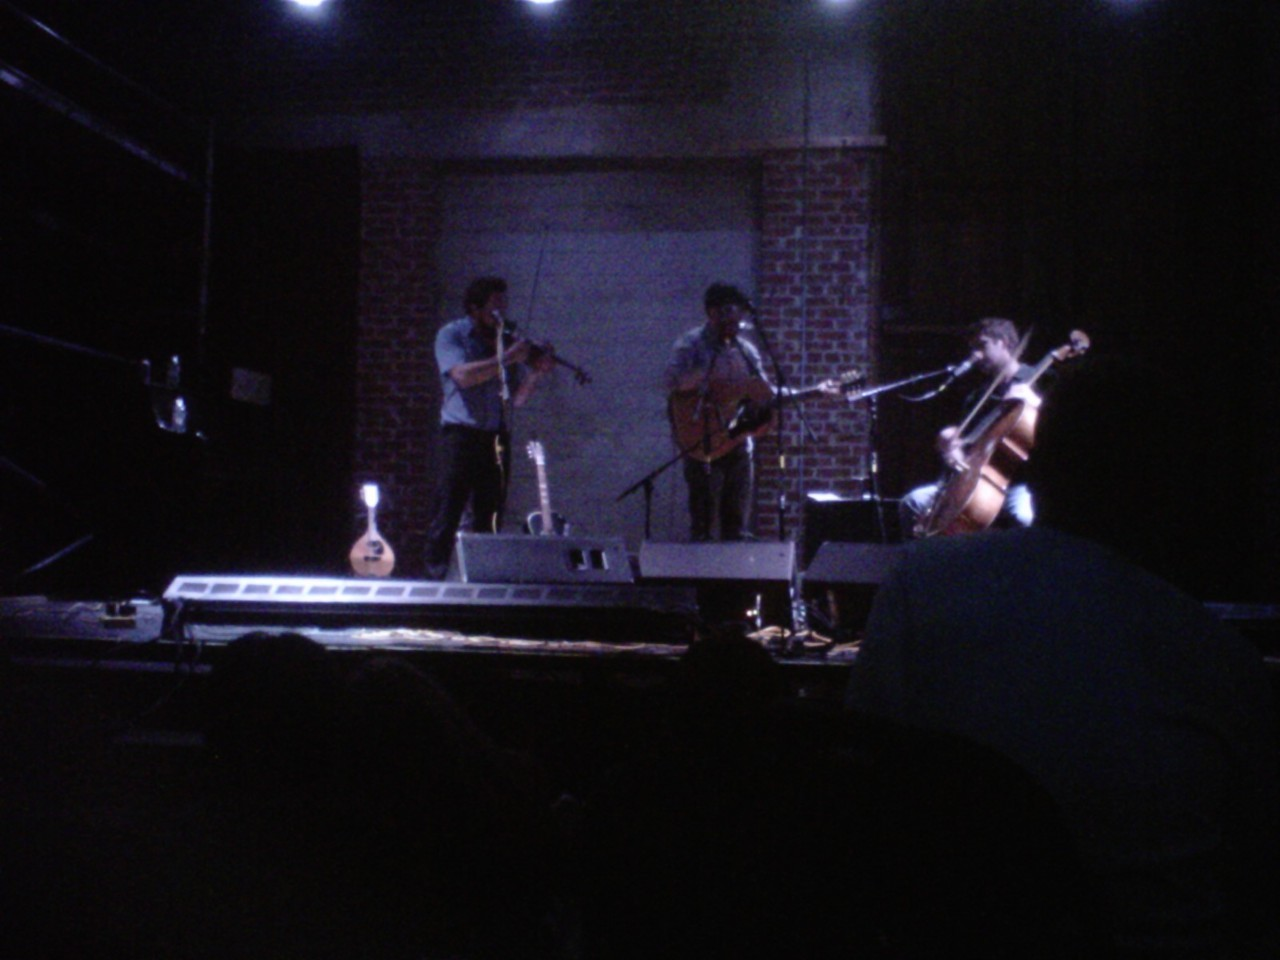 Amazing Gregory Alan Isakov show with my best friend. Couldn't ask for more.